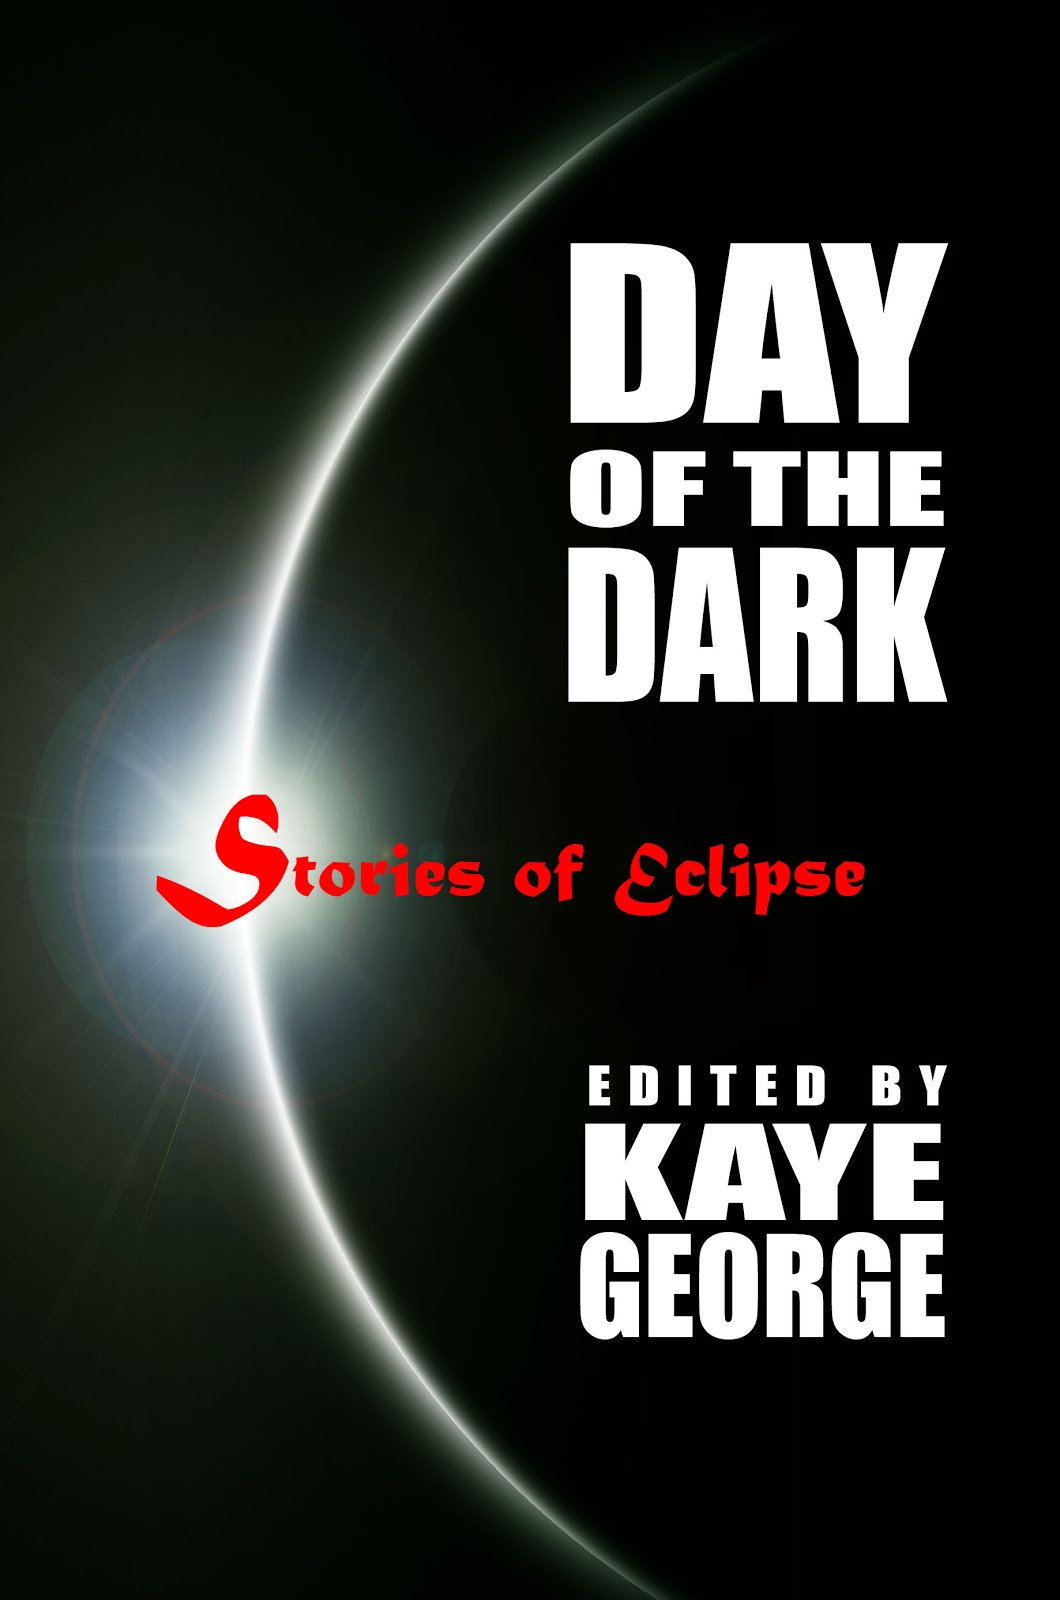 DAY OF THE DARK Stories of Eclipse